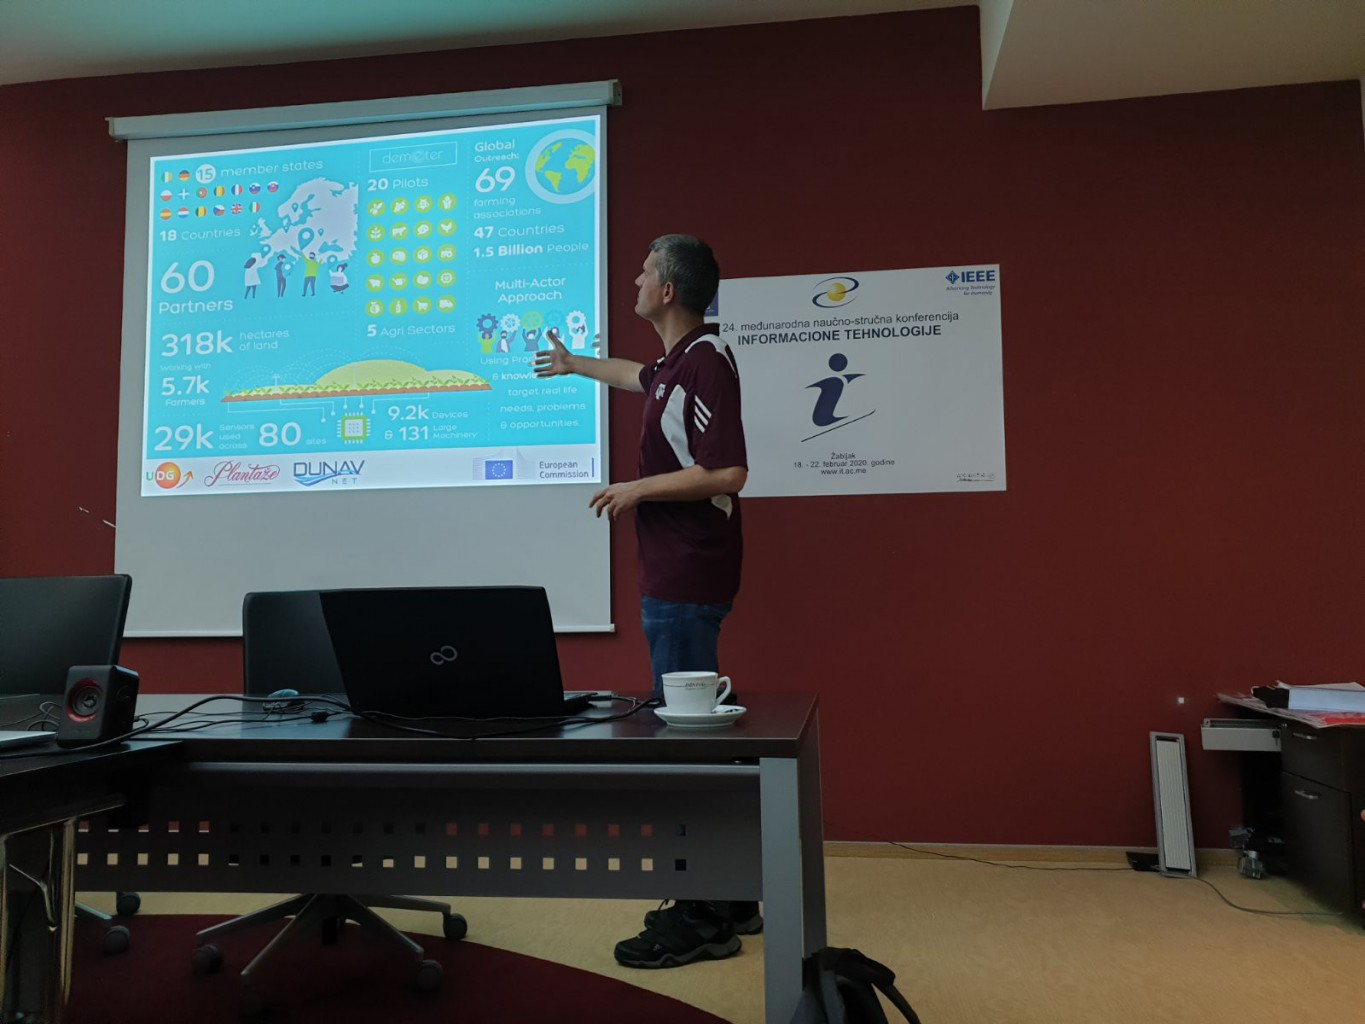 DEMETER presented at several European Conferences